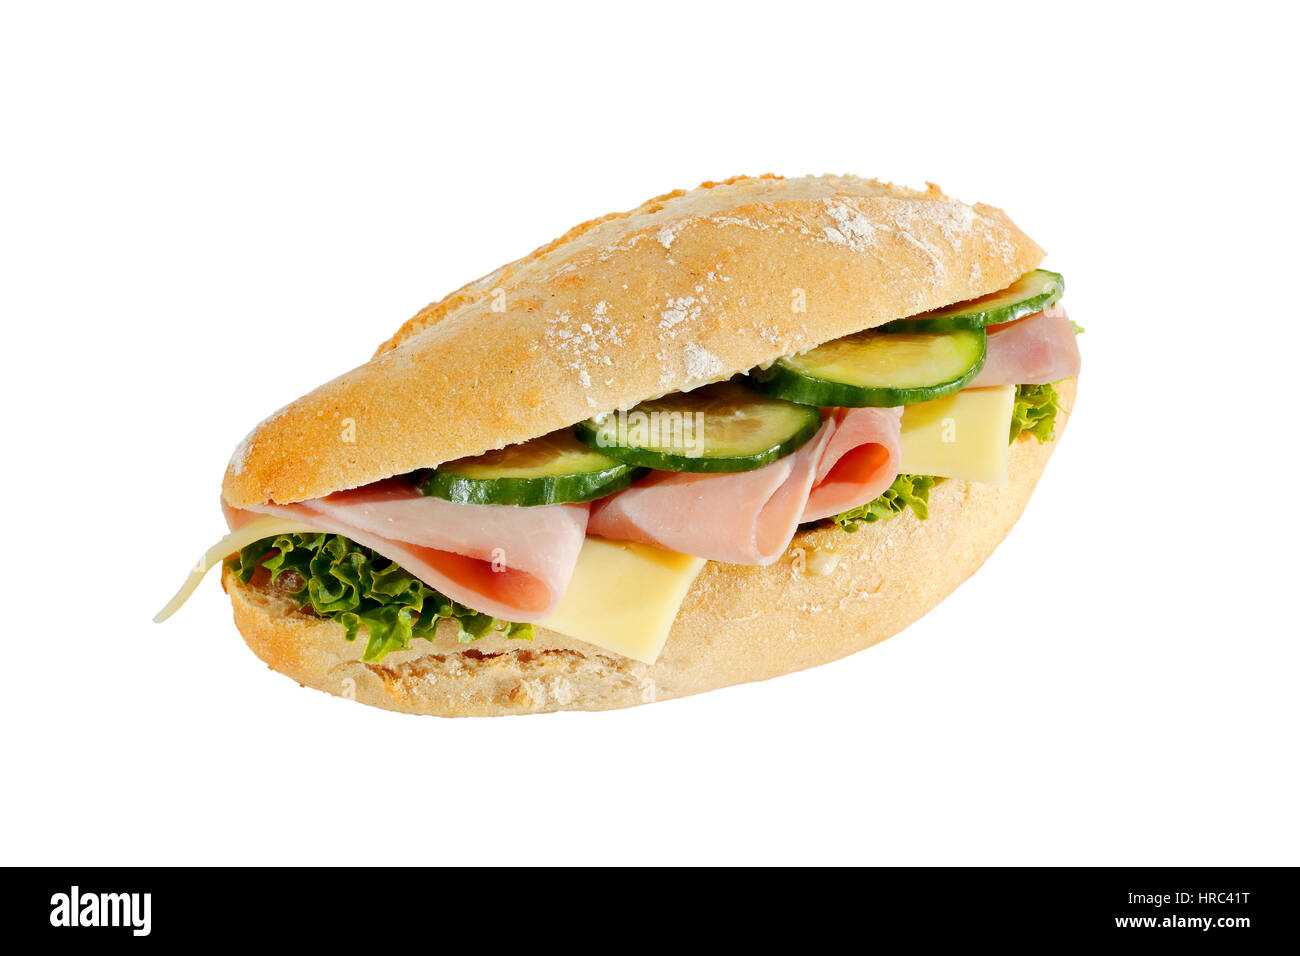 Baguette roll with ham, cheese, lettuce and cucumber slices, isolated - Stock Image